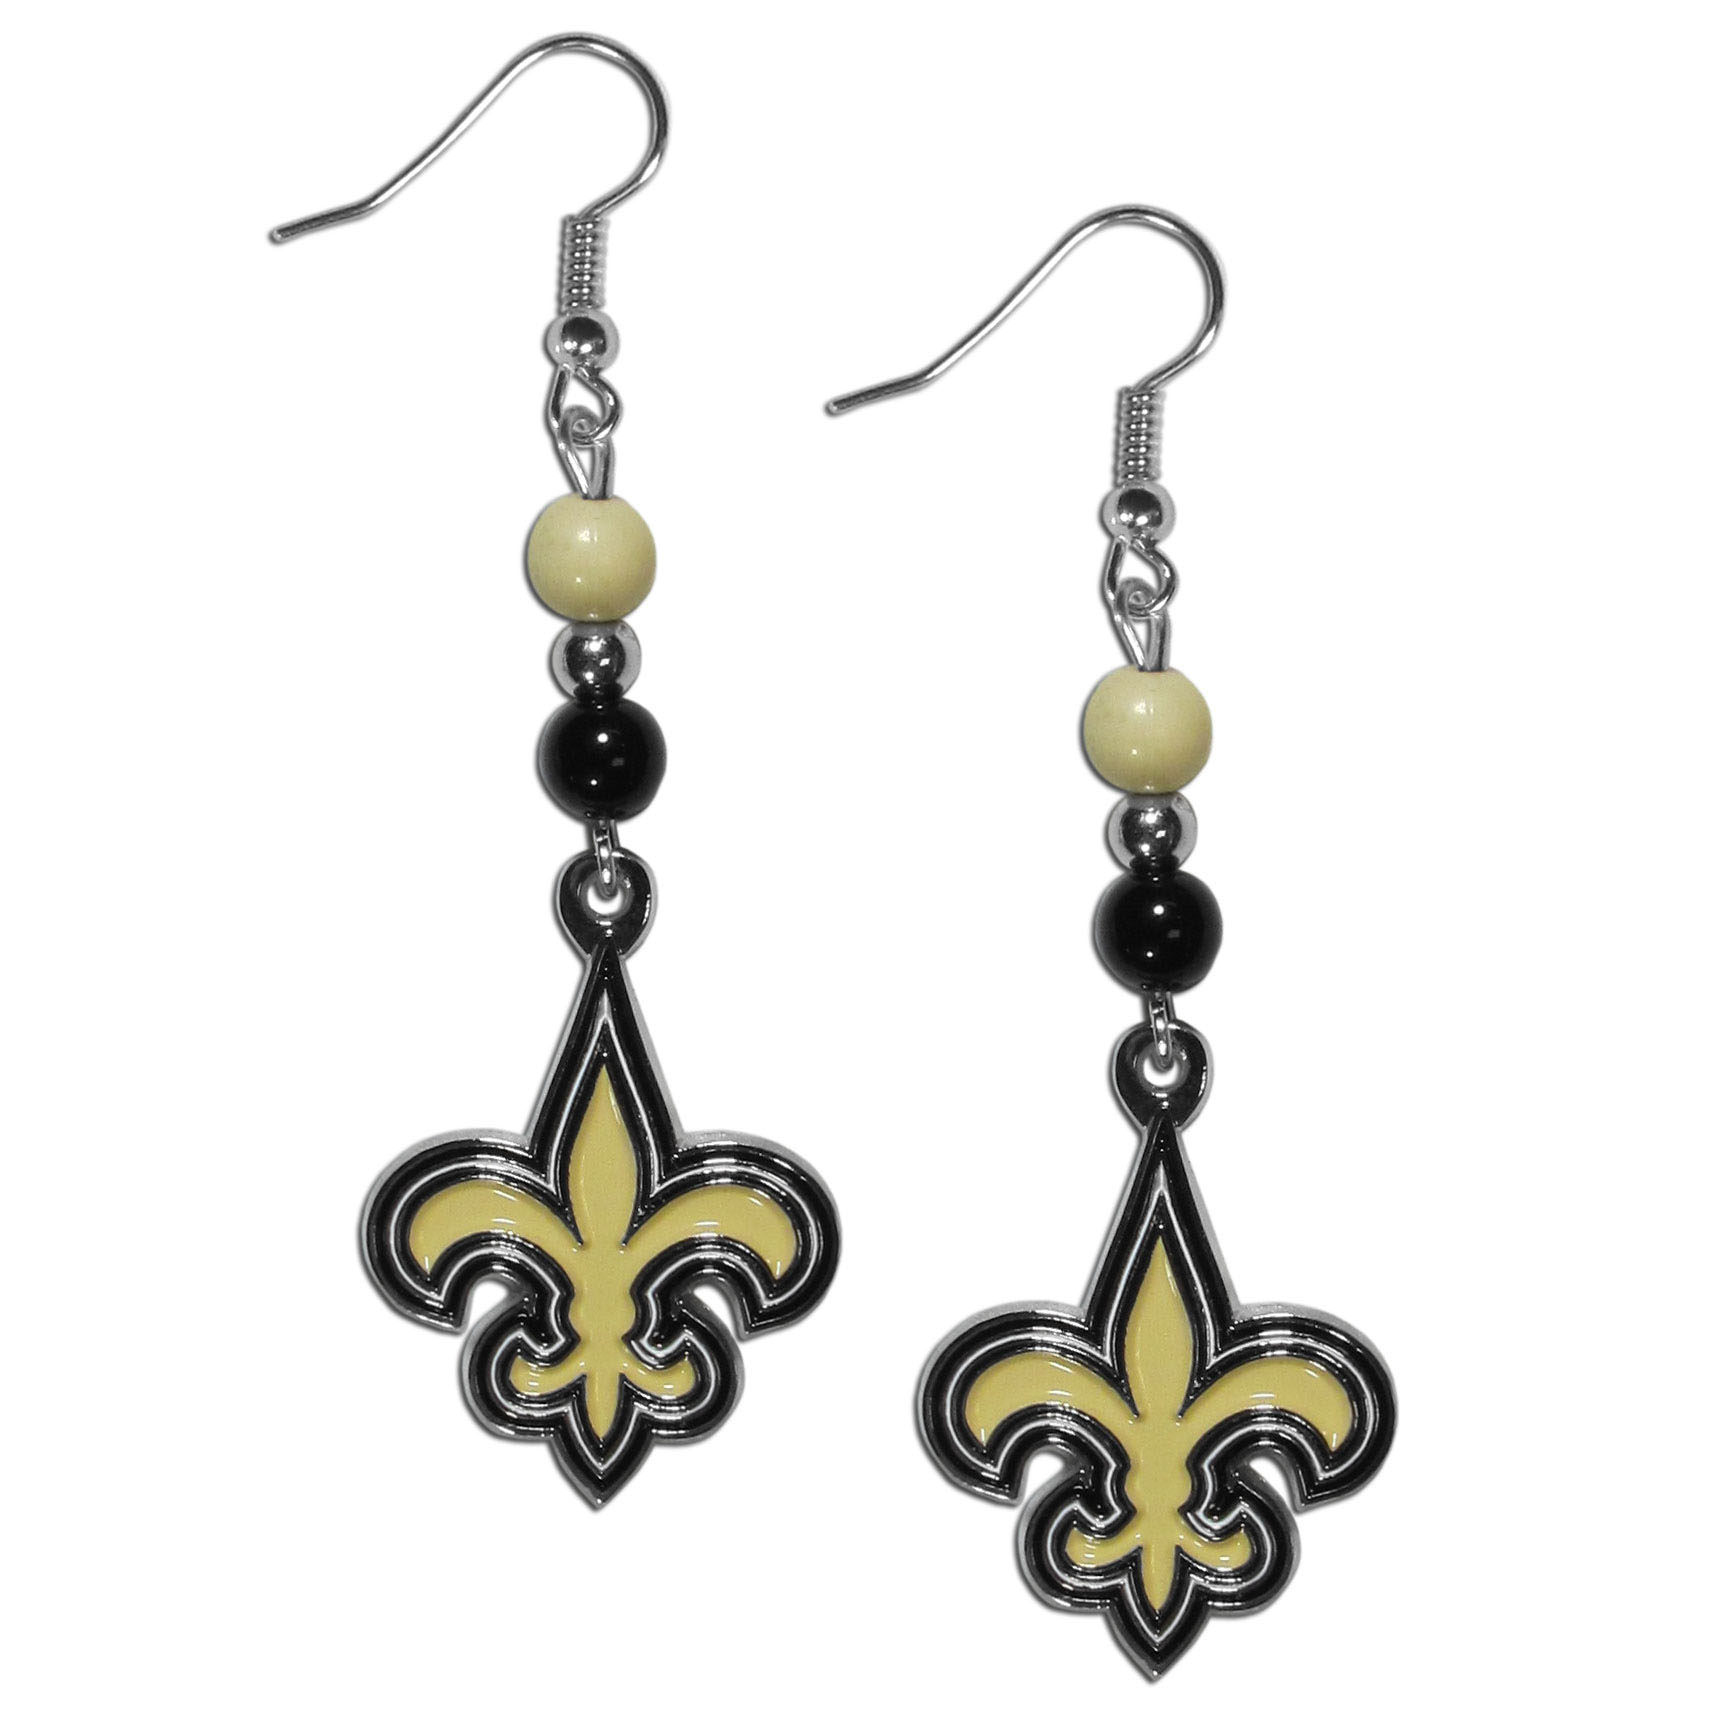 New Orleans Saints Fan Bead Dangle Earrings - Love your team, show it off with our New Orleans Saints bead dangle earrings! These super cute earrings hang approximately 2 inches and features 2 team colored beads and a high polish team charm. A must have for game day!